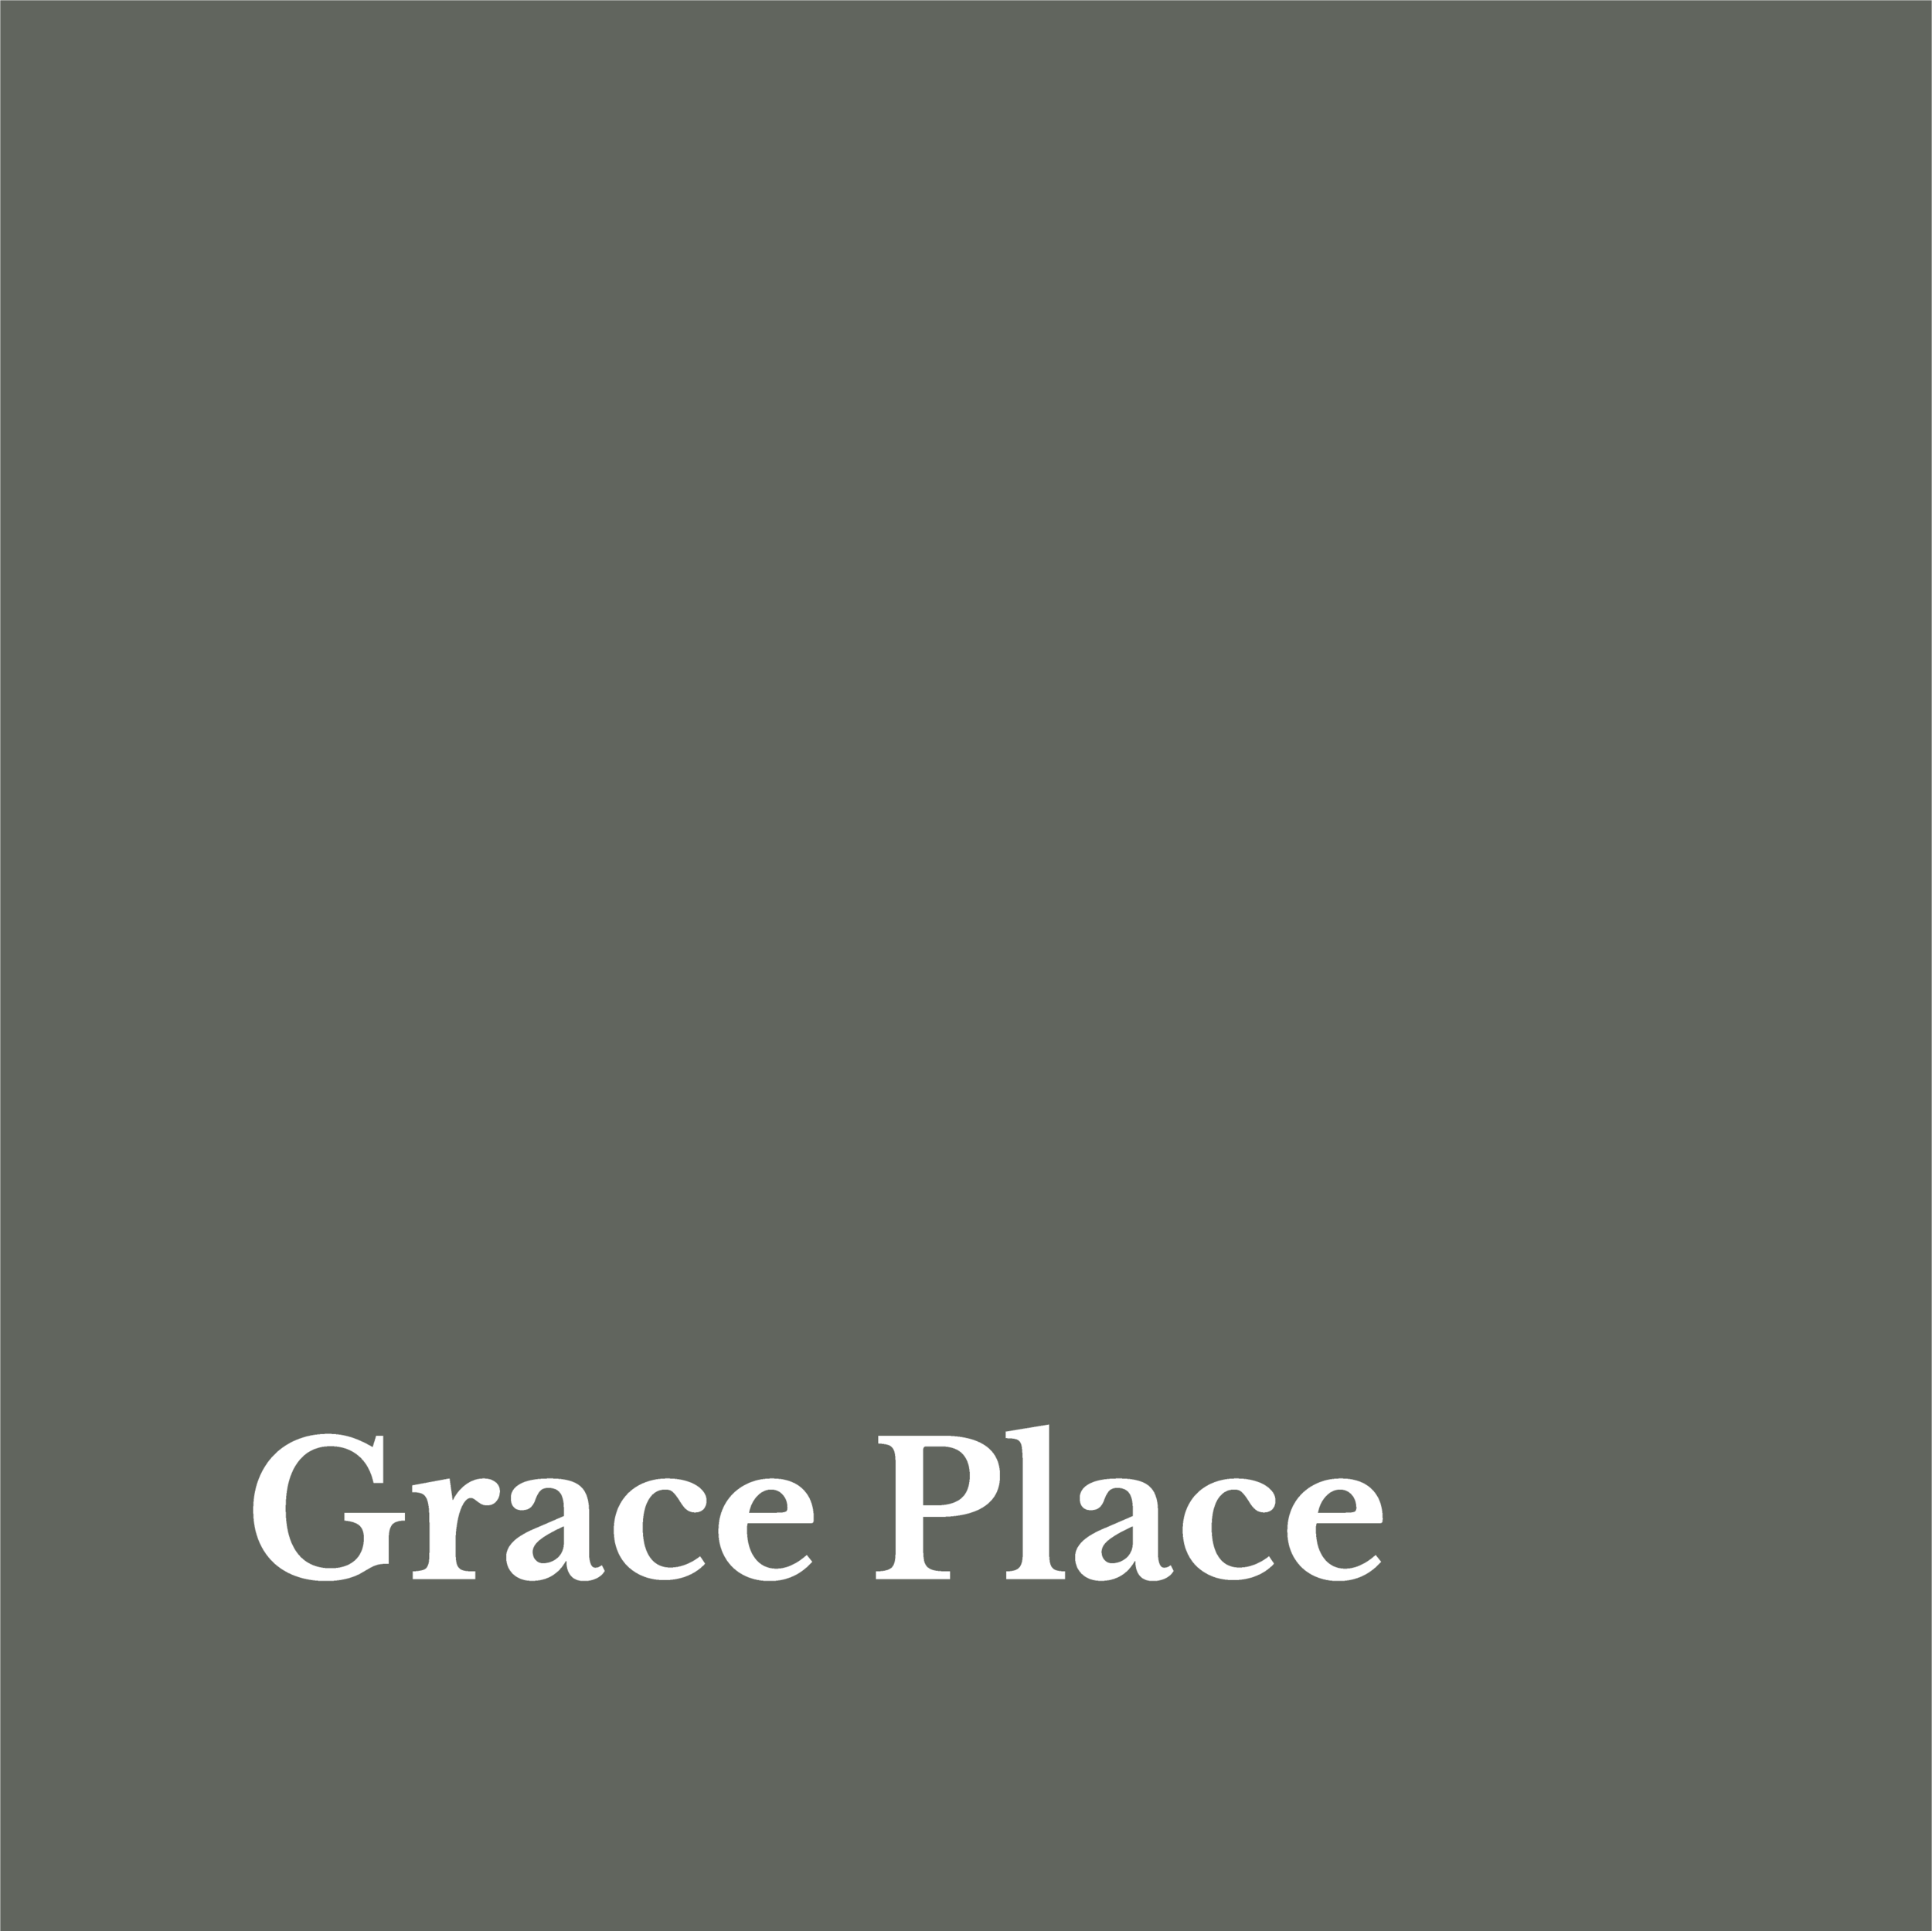 Grace Place.png